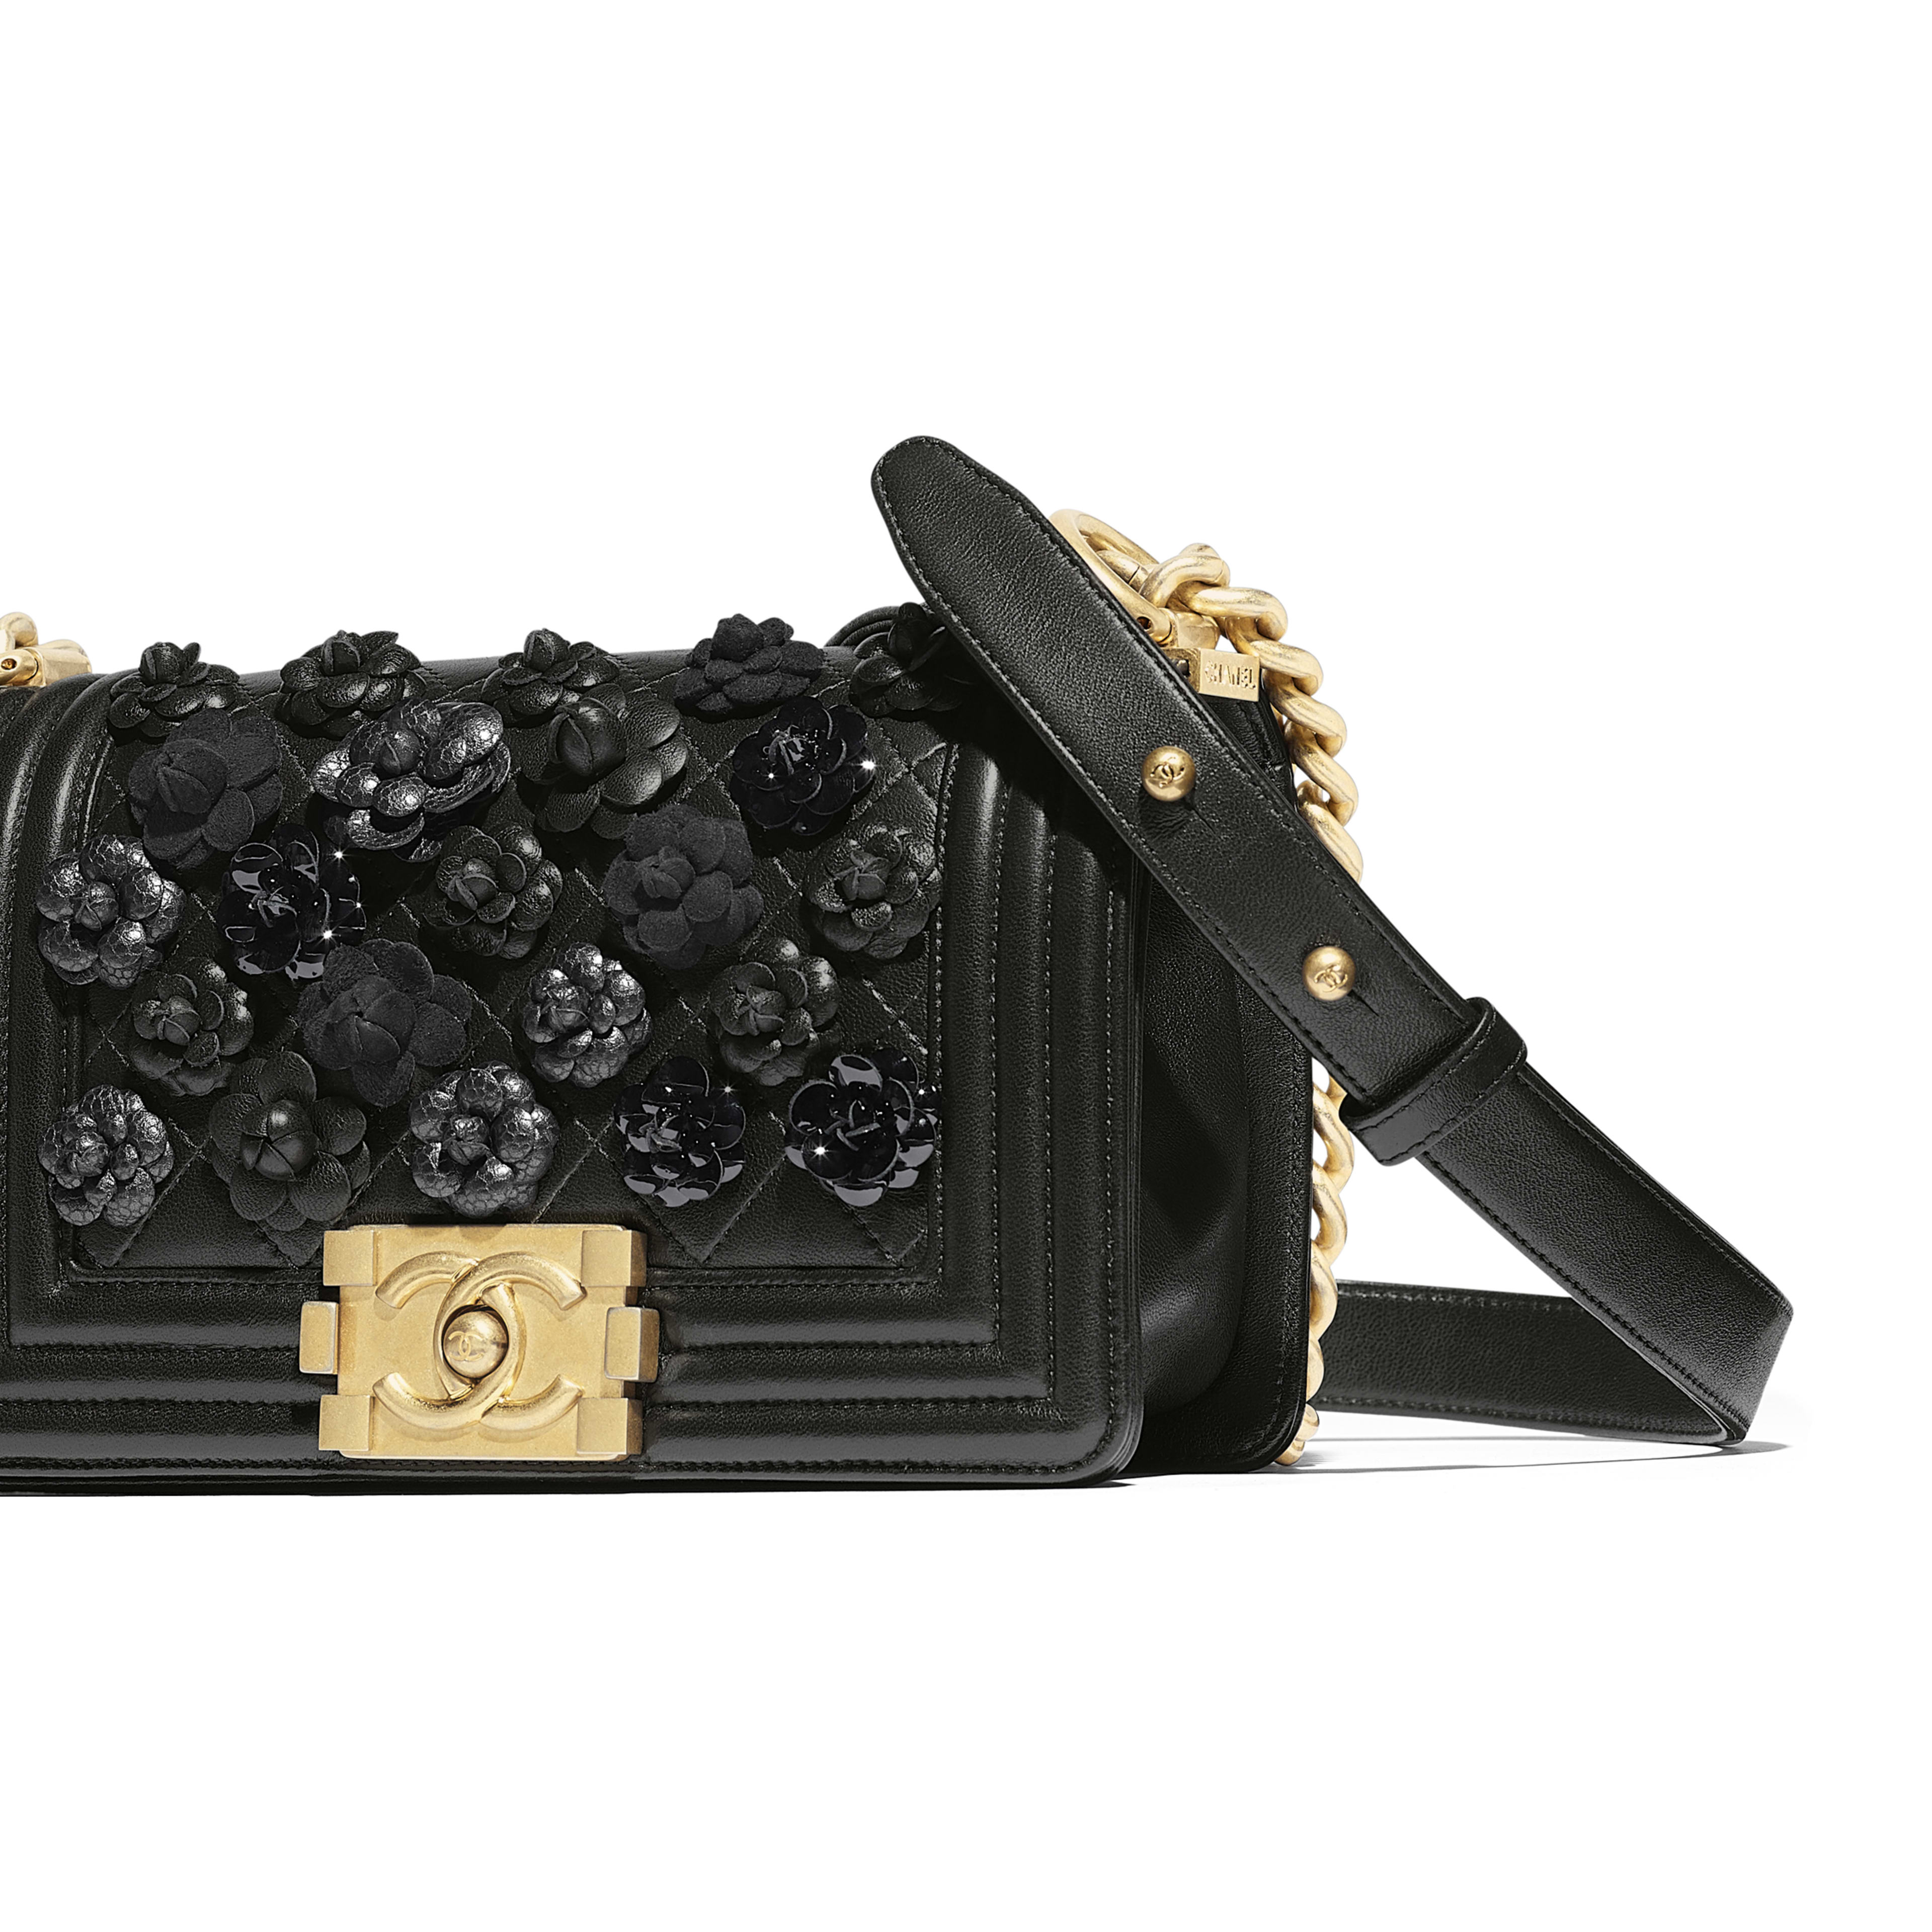 Small BOY CHANEL Handbag - Black - Embroidered Lambskin & Gold-Tone Metal - Other view - see full sized version